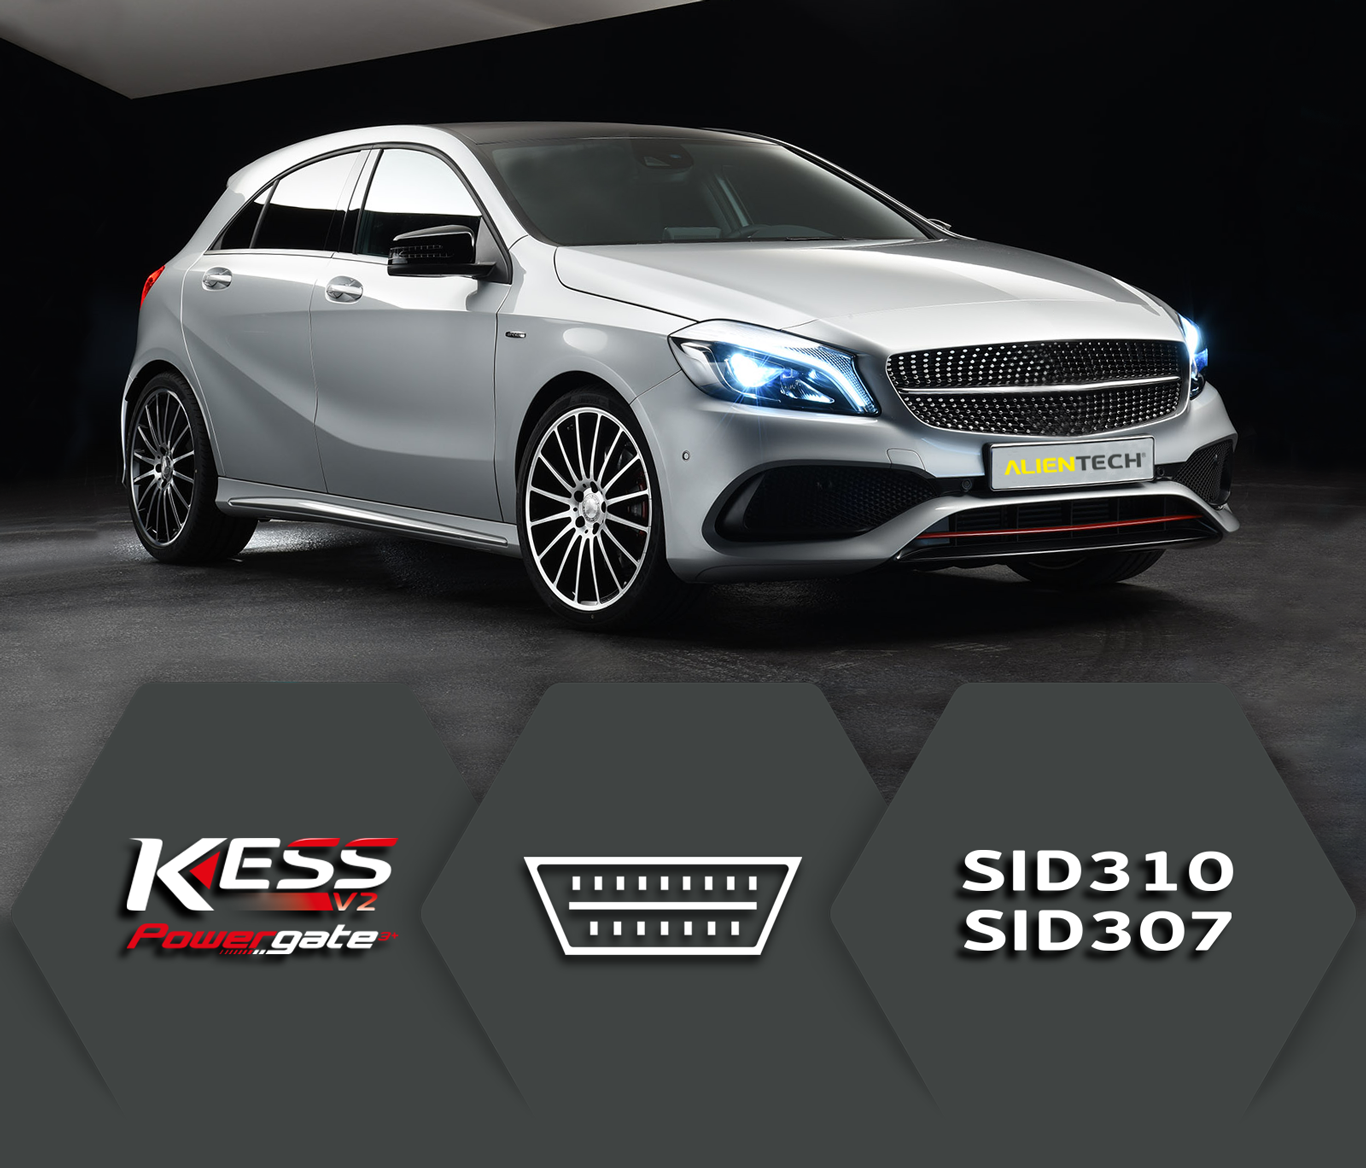 KESSv2 Full OBD reading and writing of the Continental SID310 and SID307